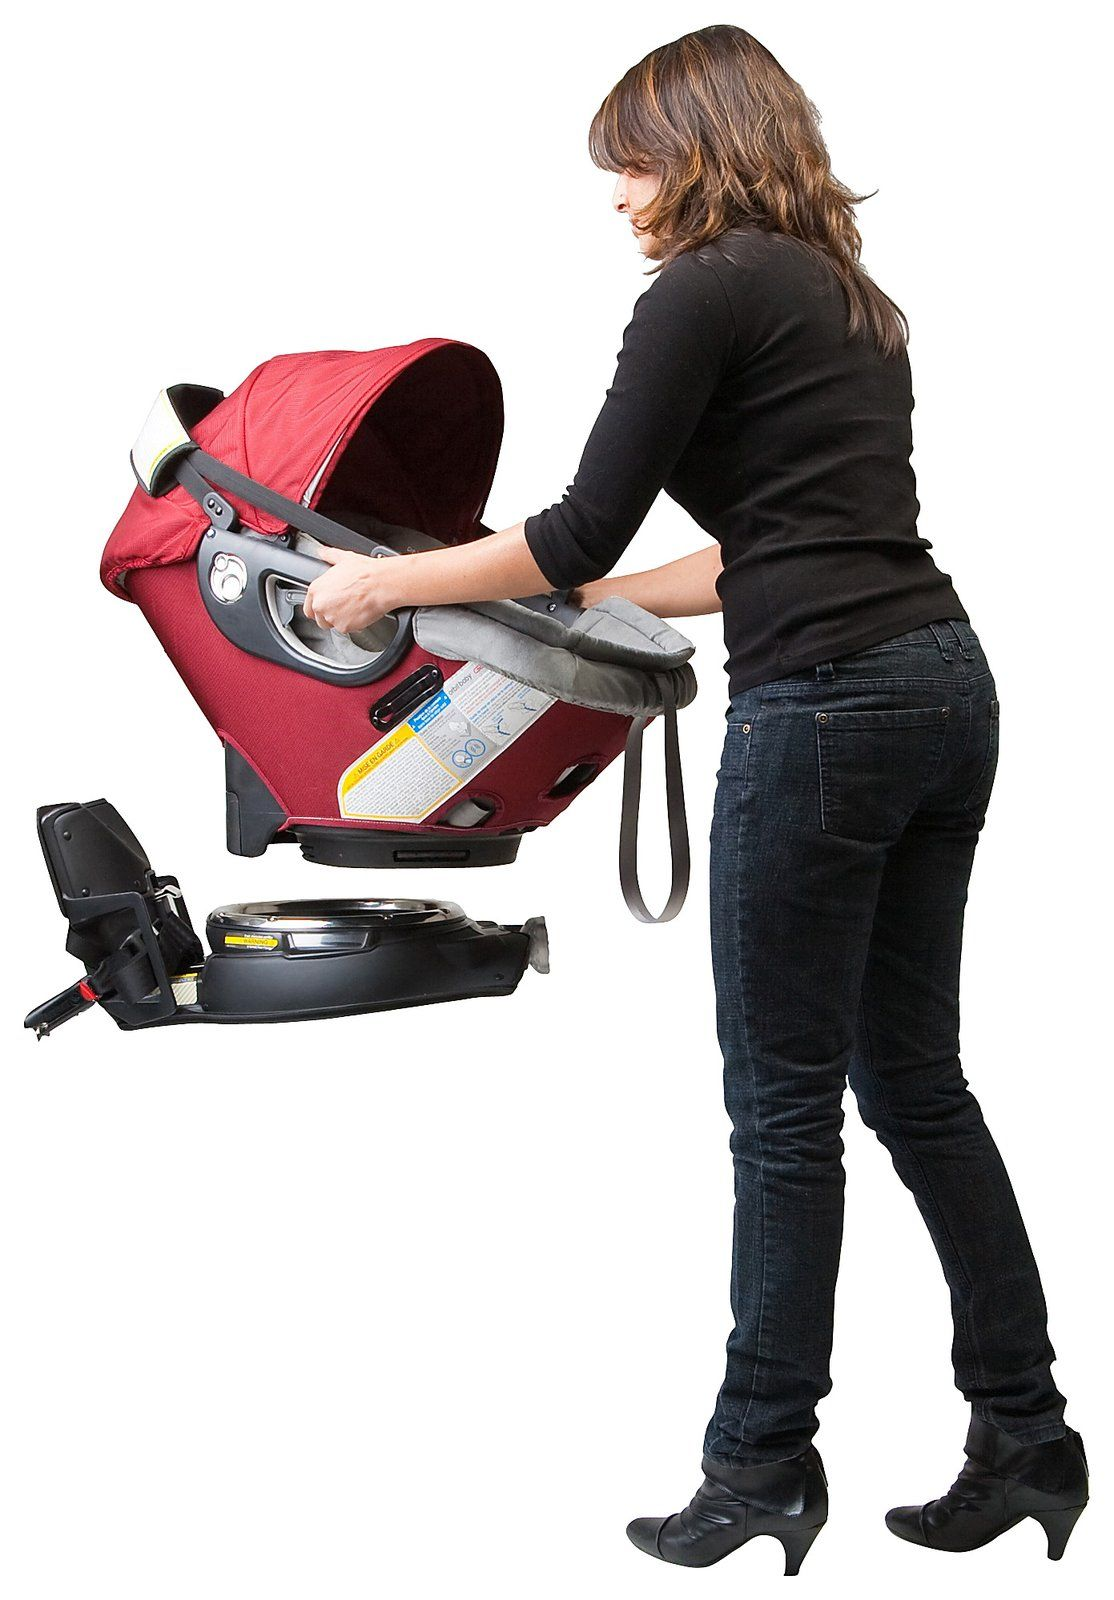 Orbit Baby Infant Car Seat and Car Seat Base G2 Ruby